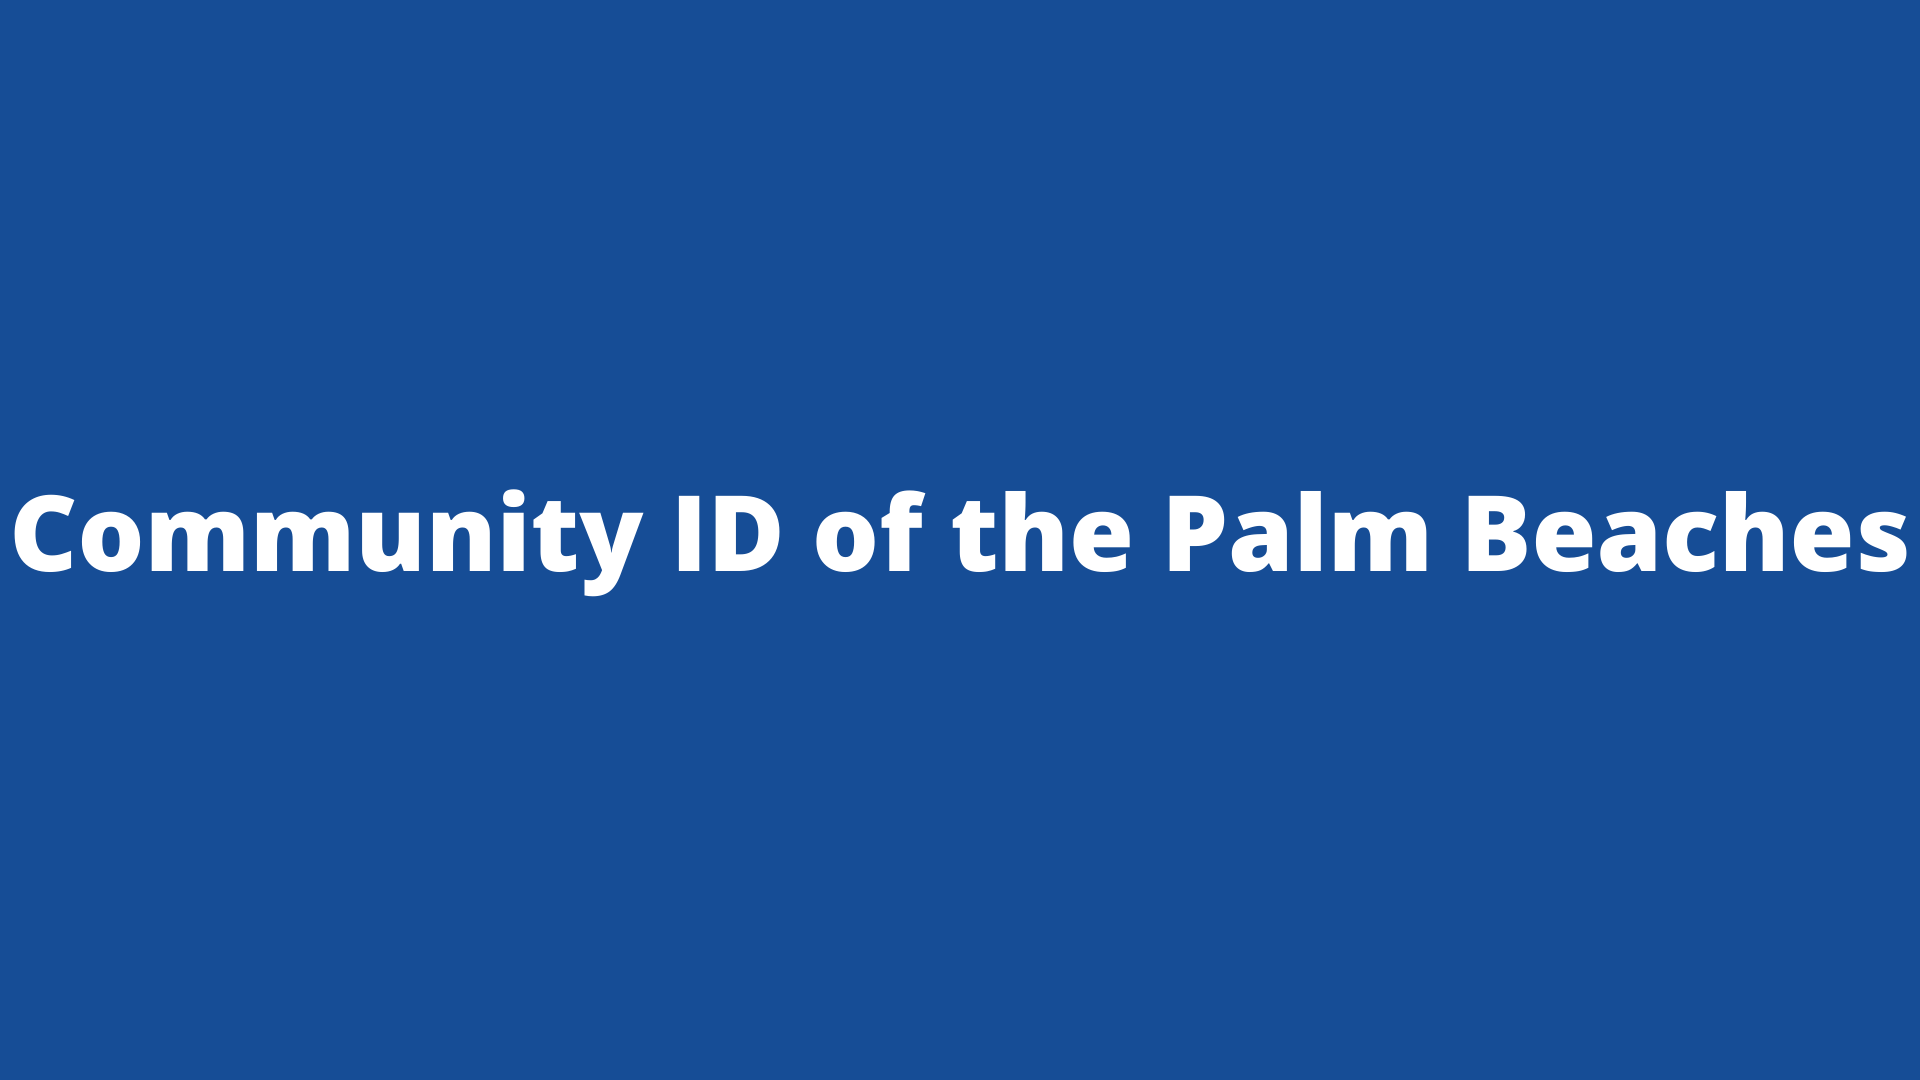 Community ID of the Palm Beaches